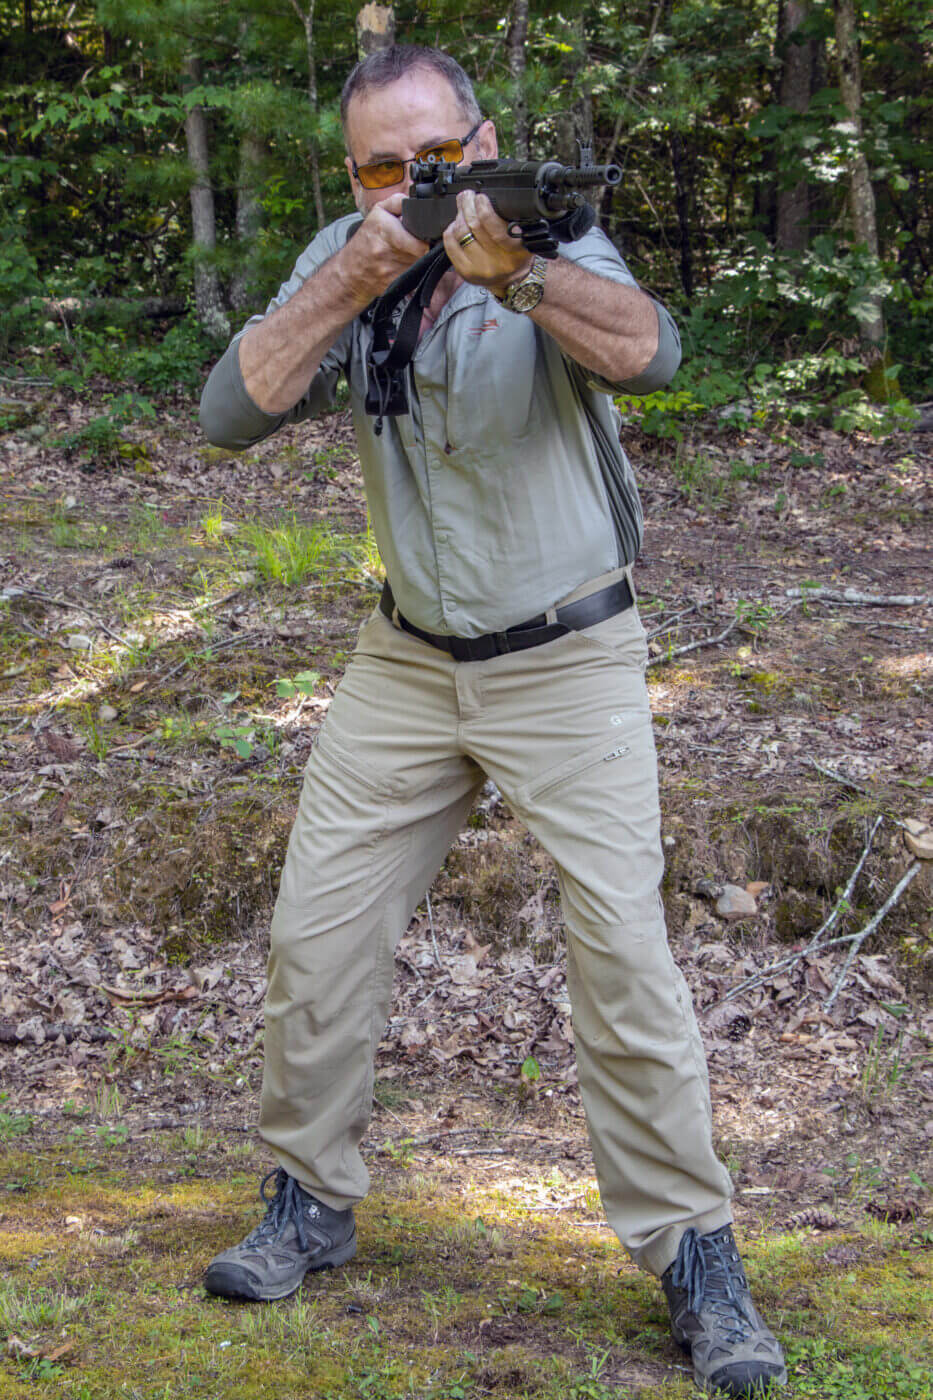 Demonstrating the proper standing rifle shooting position